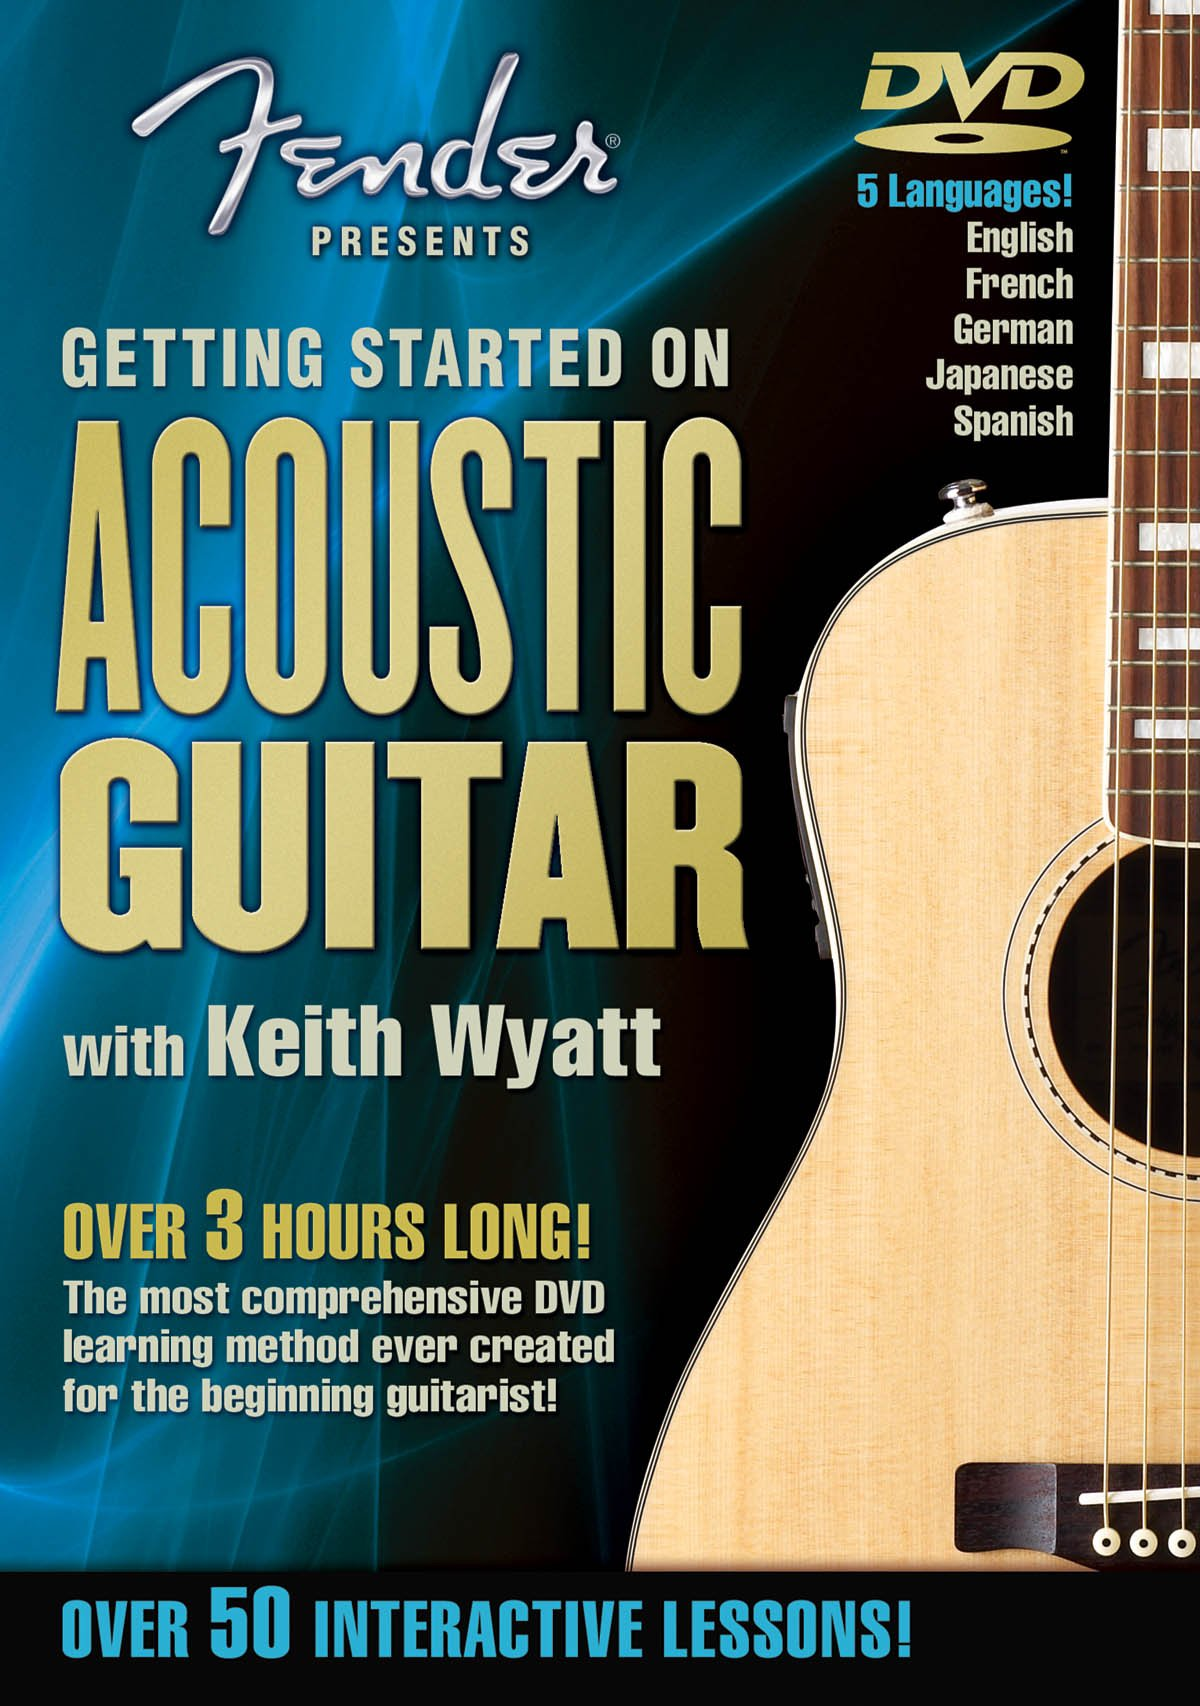 Amazon Fender Presents Getting Started On Acoustic Guitar A